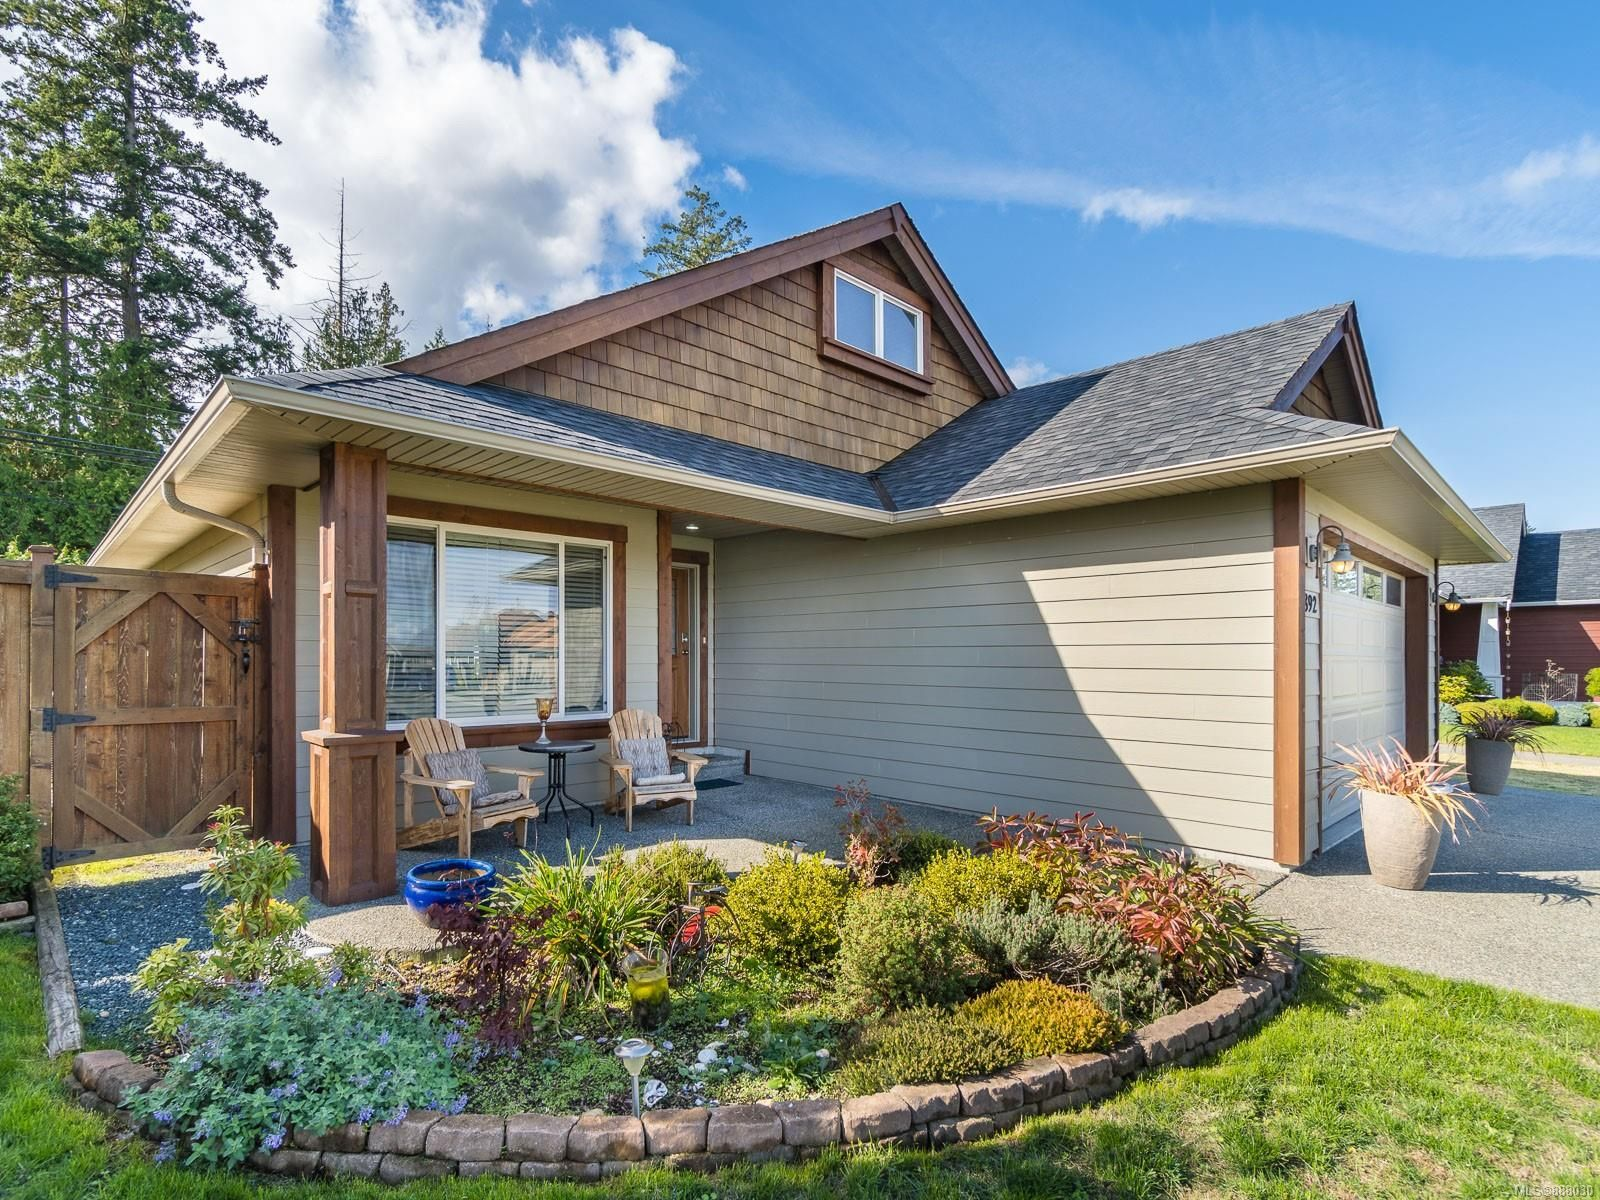 Main Photo: 892 Bouman Pl in : PQ French Creek House for sale (Parksville/Qualicum)  : MLS®# 888030